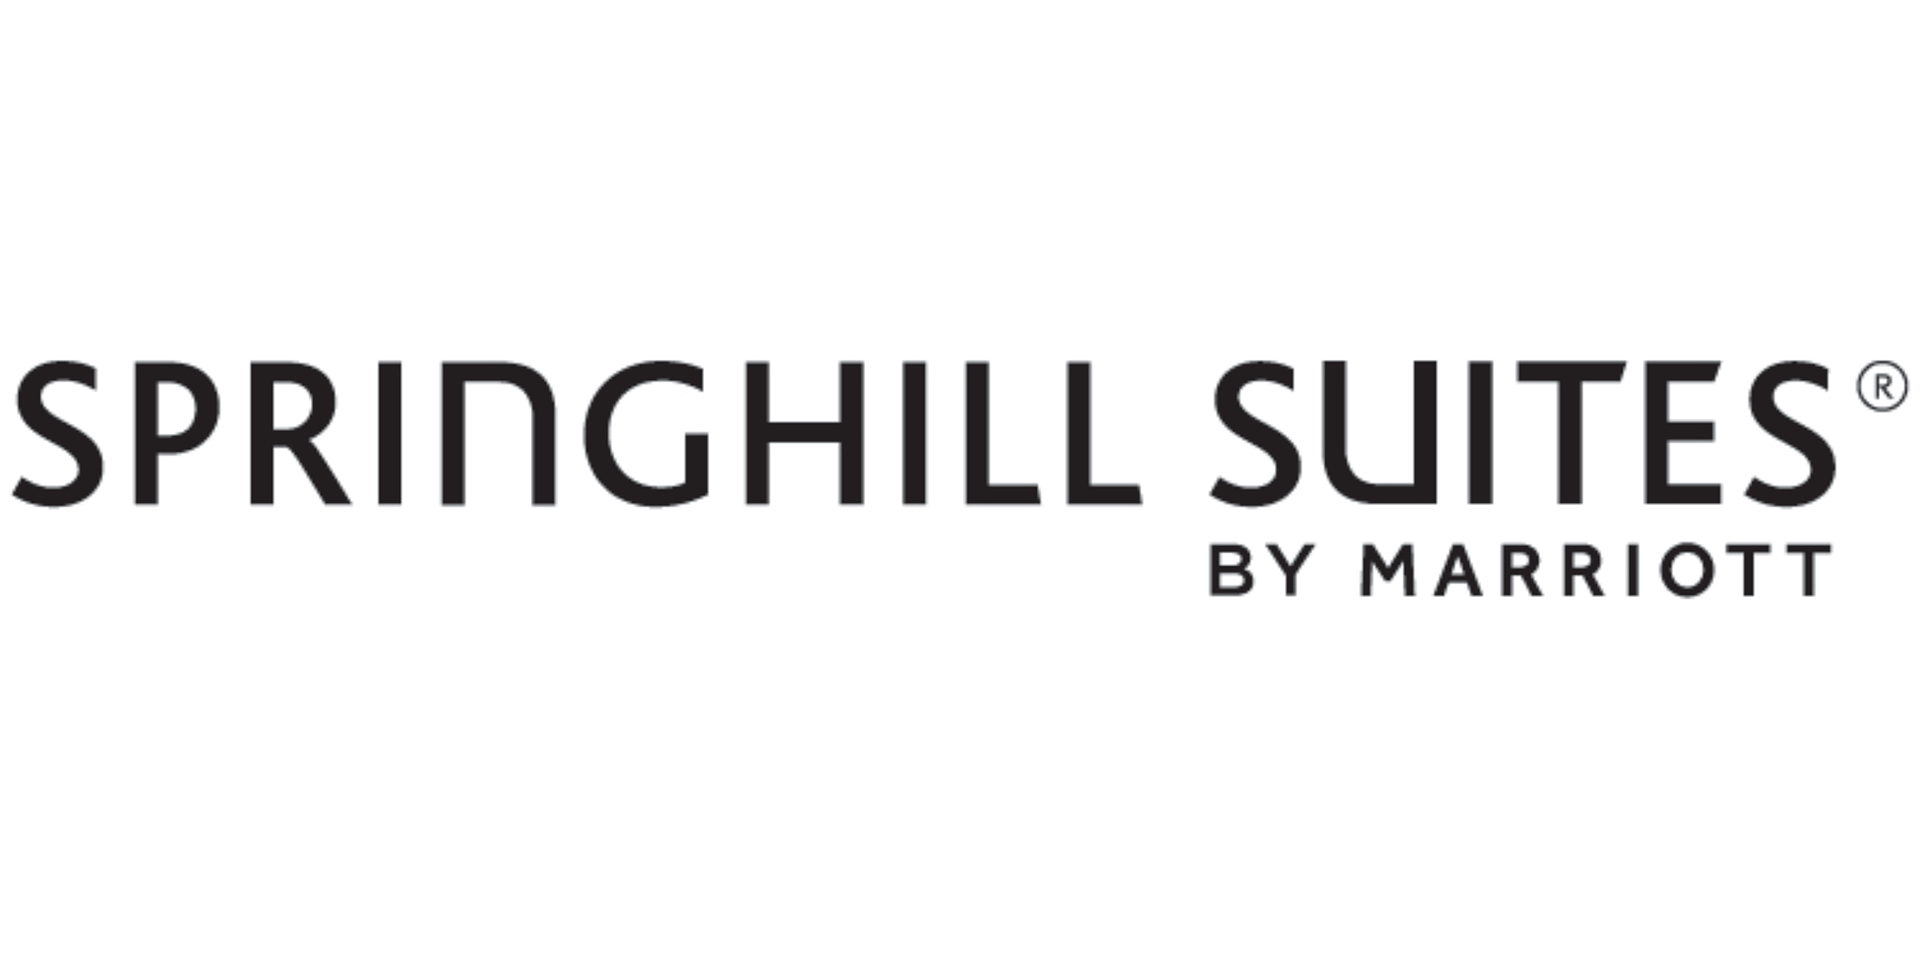 Springhill Suites by Marriott - The Shops at Willow Park